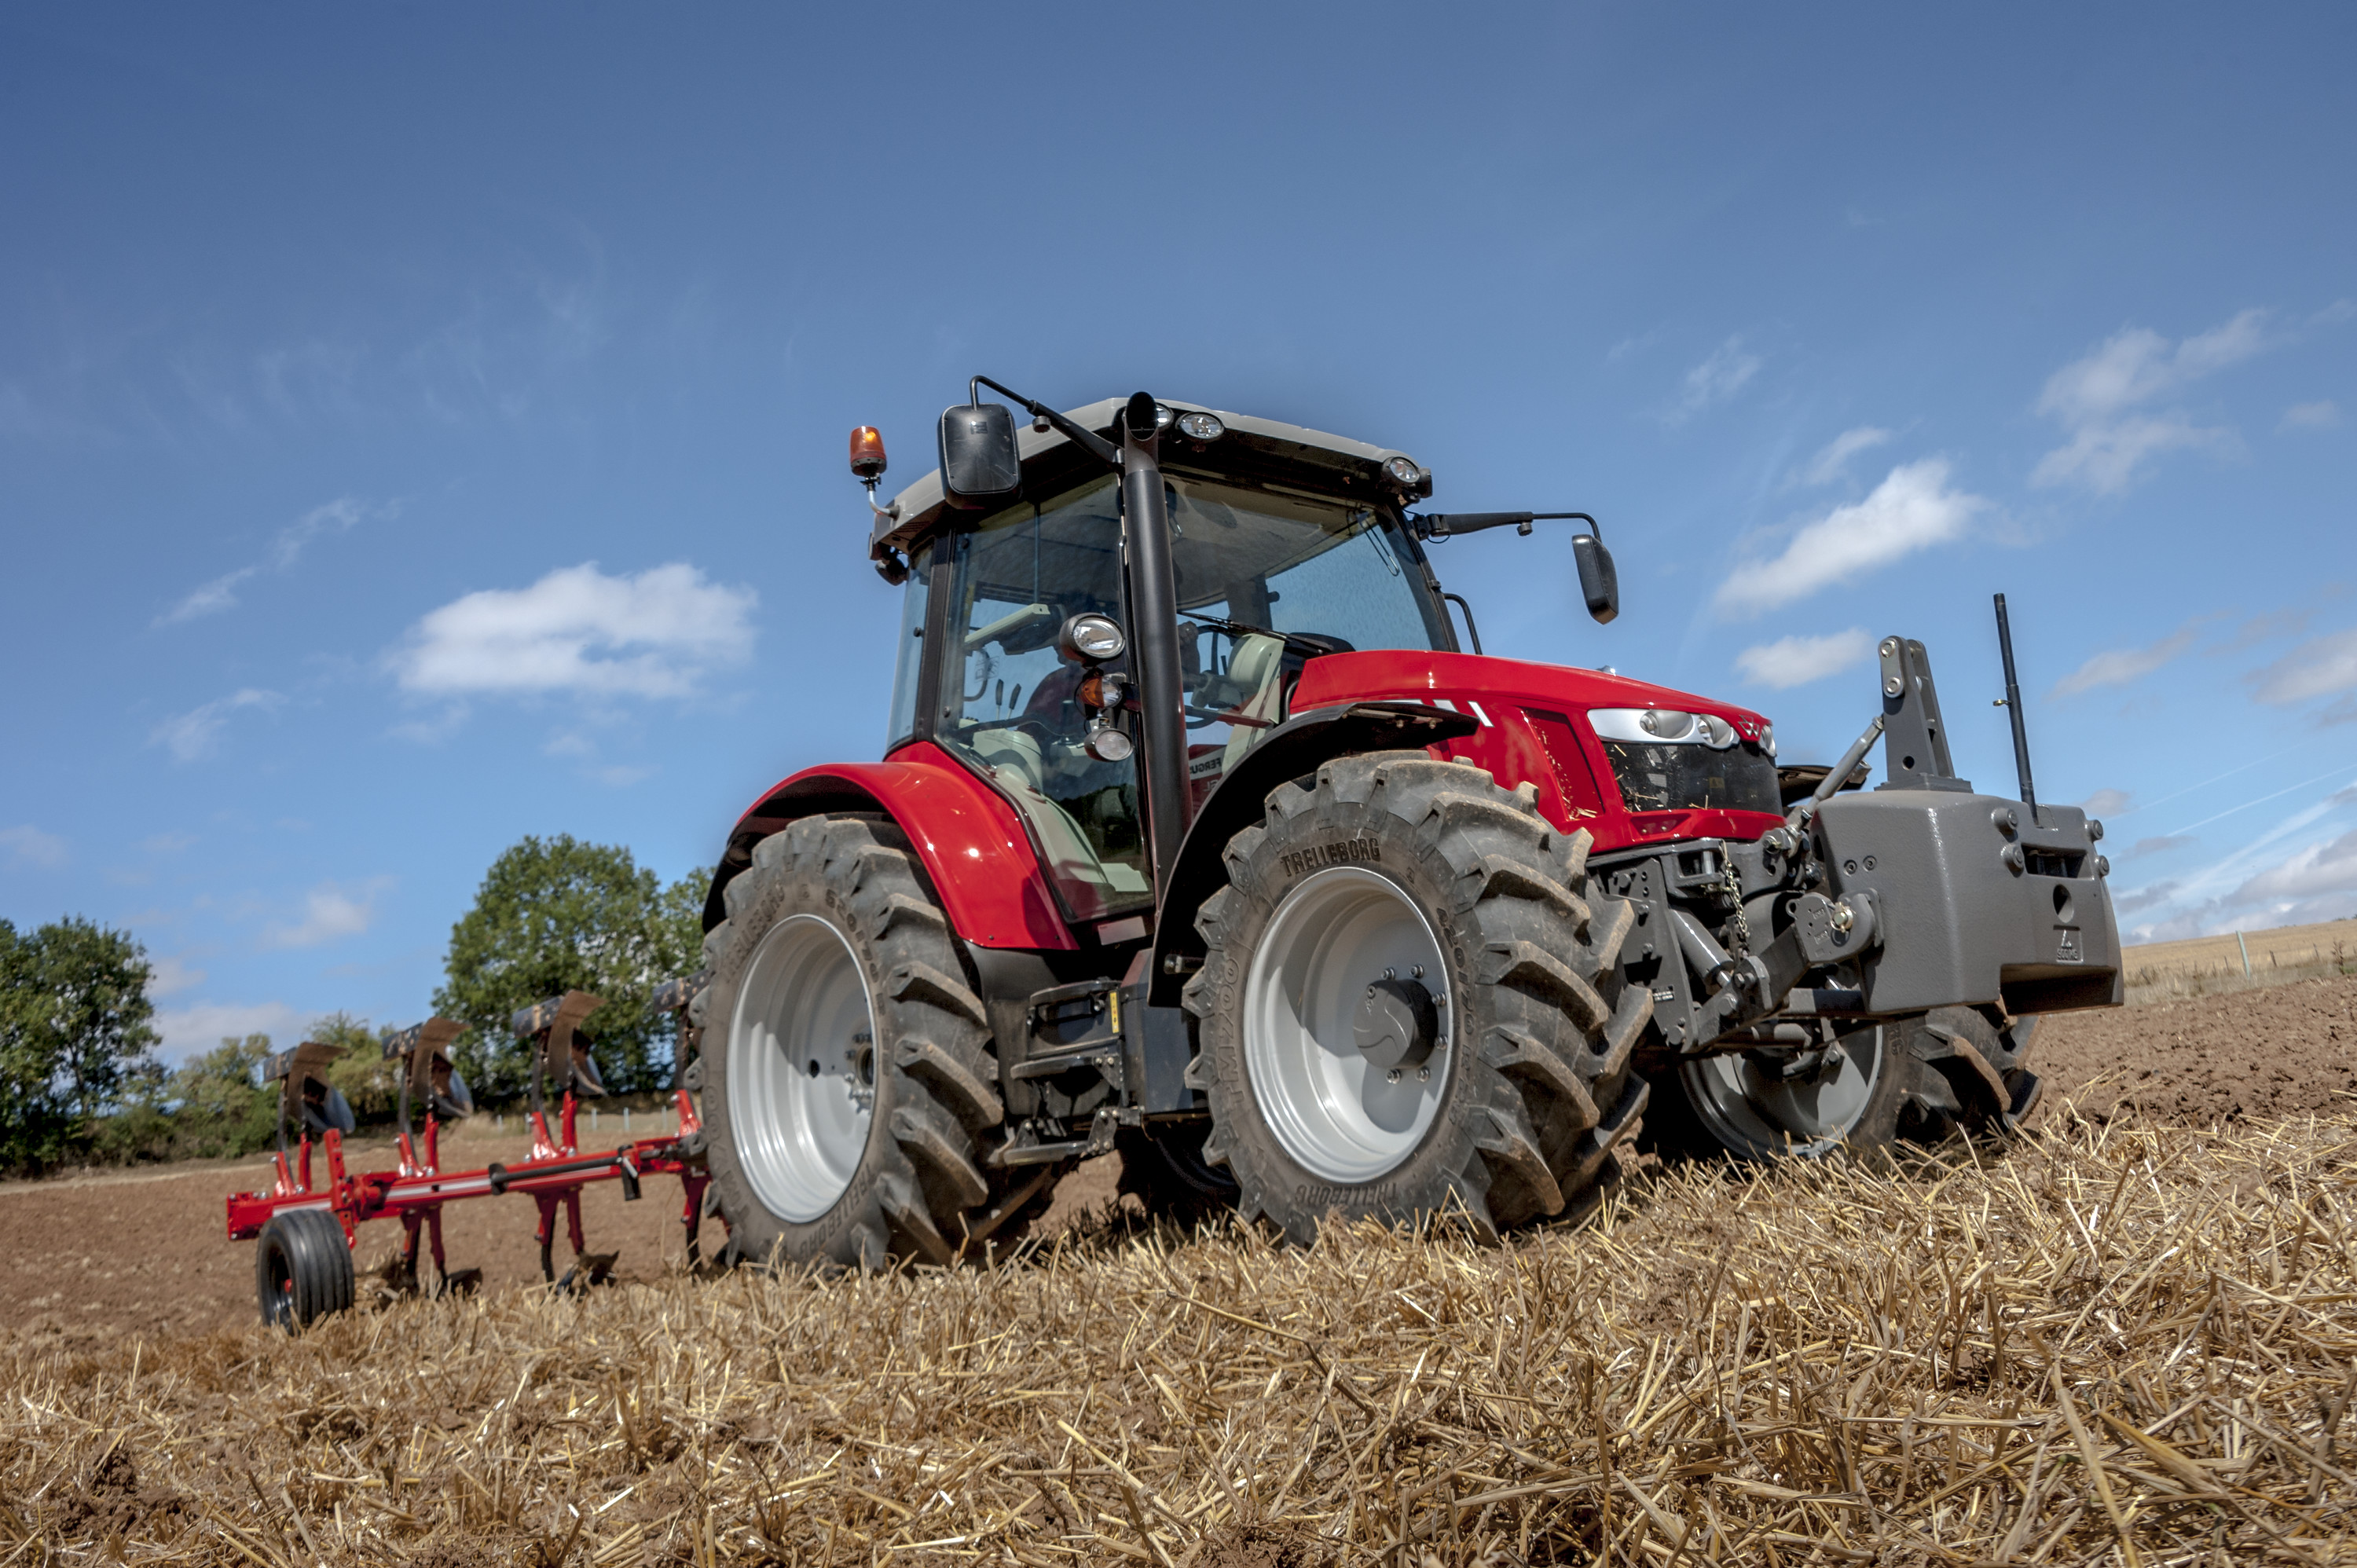 Massey Ferguson to introduce 130hp 5713 SL at Agritechnica